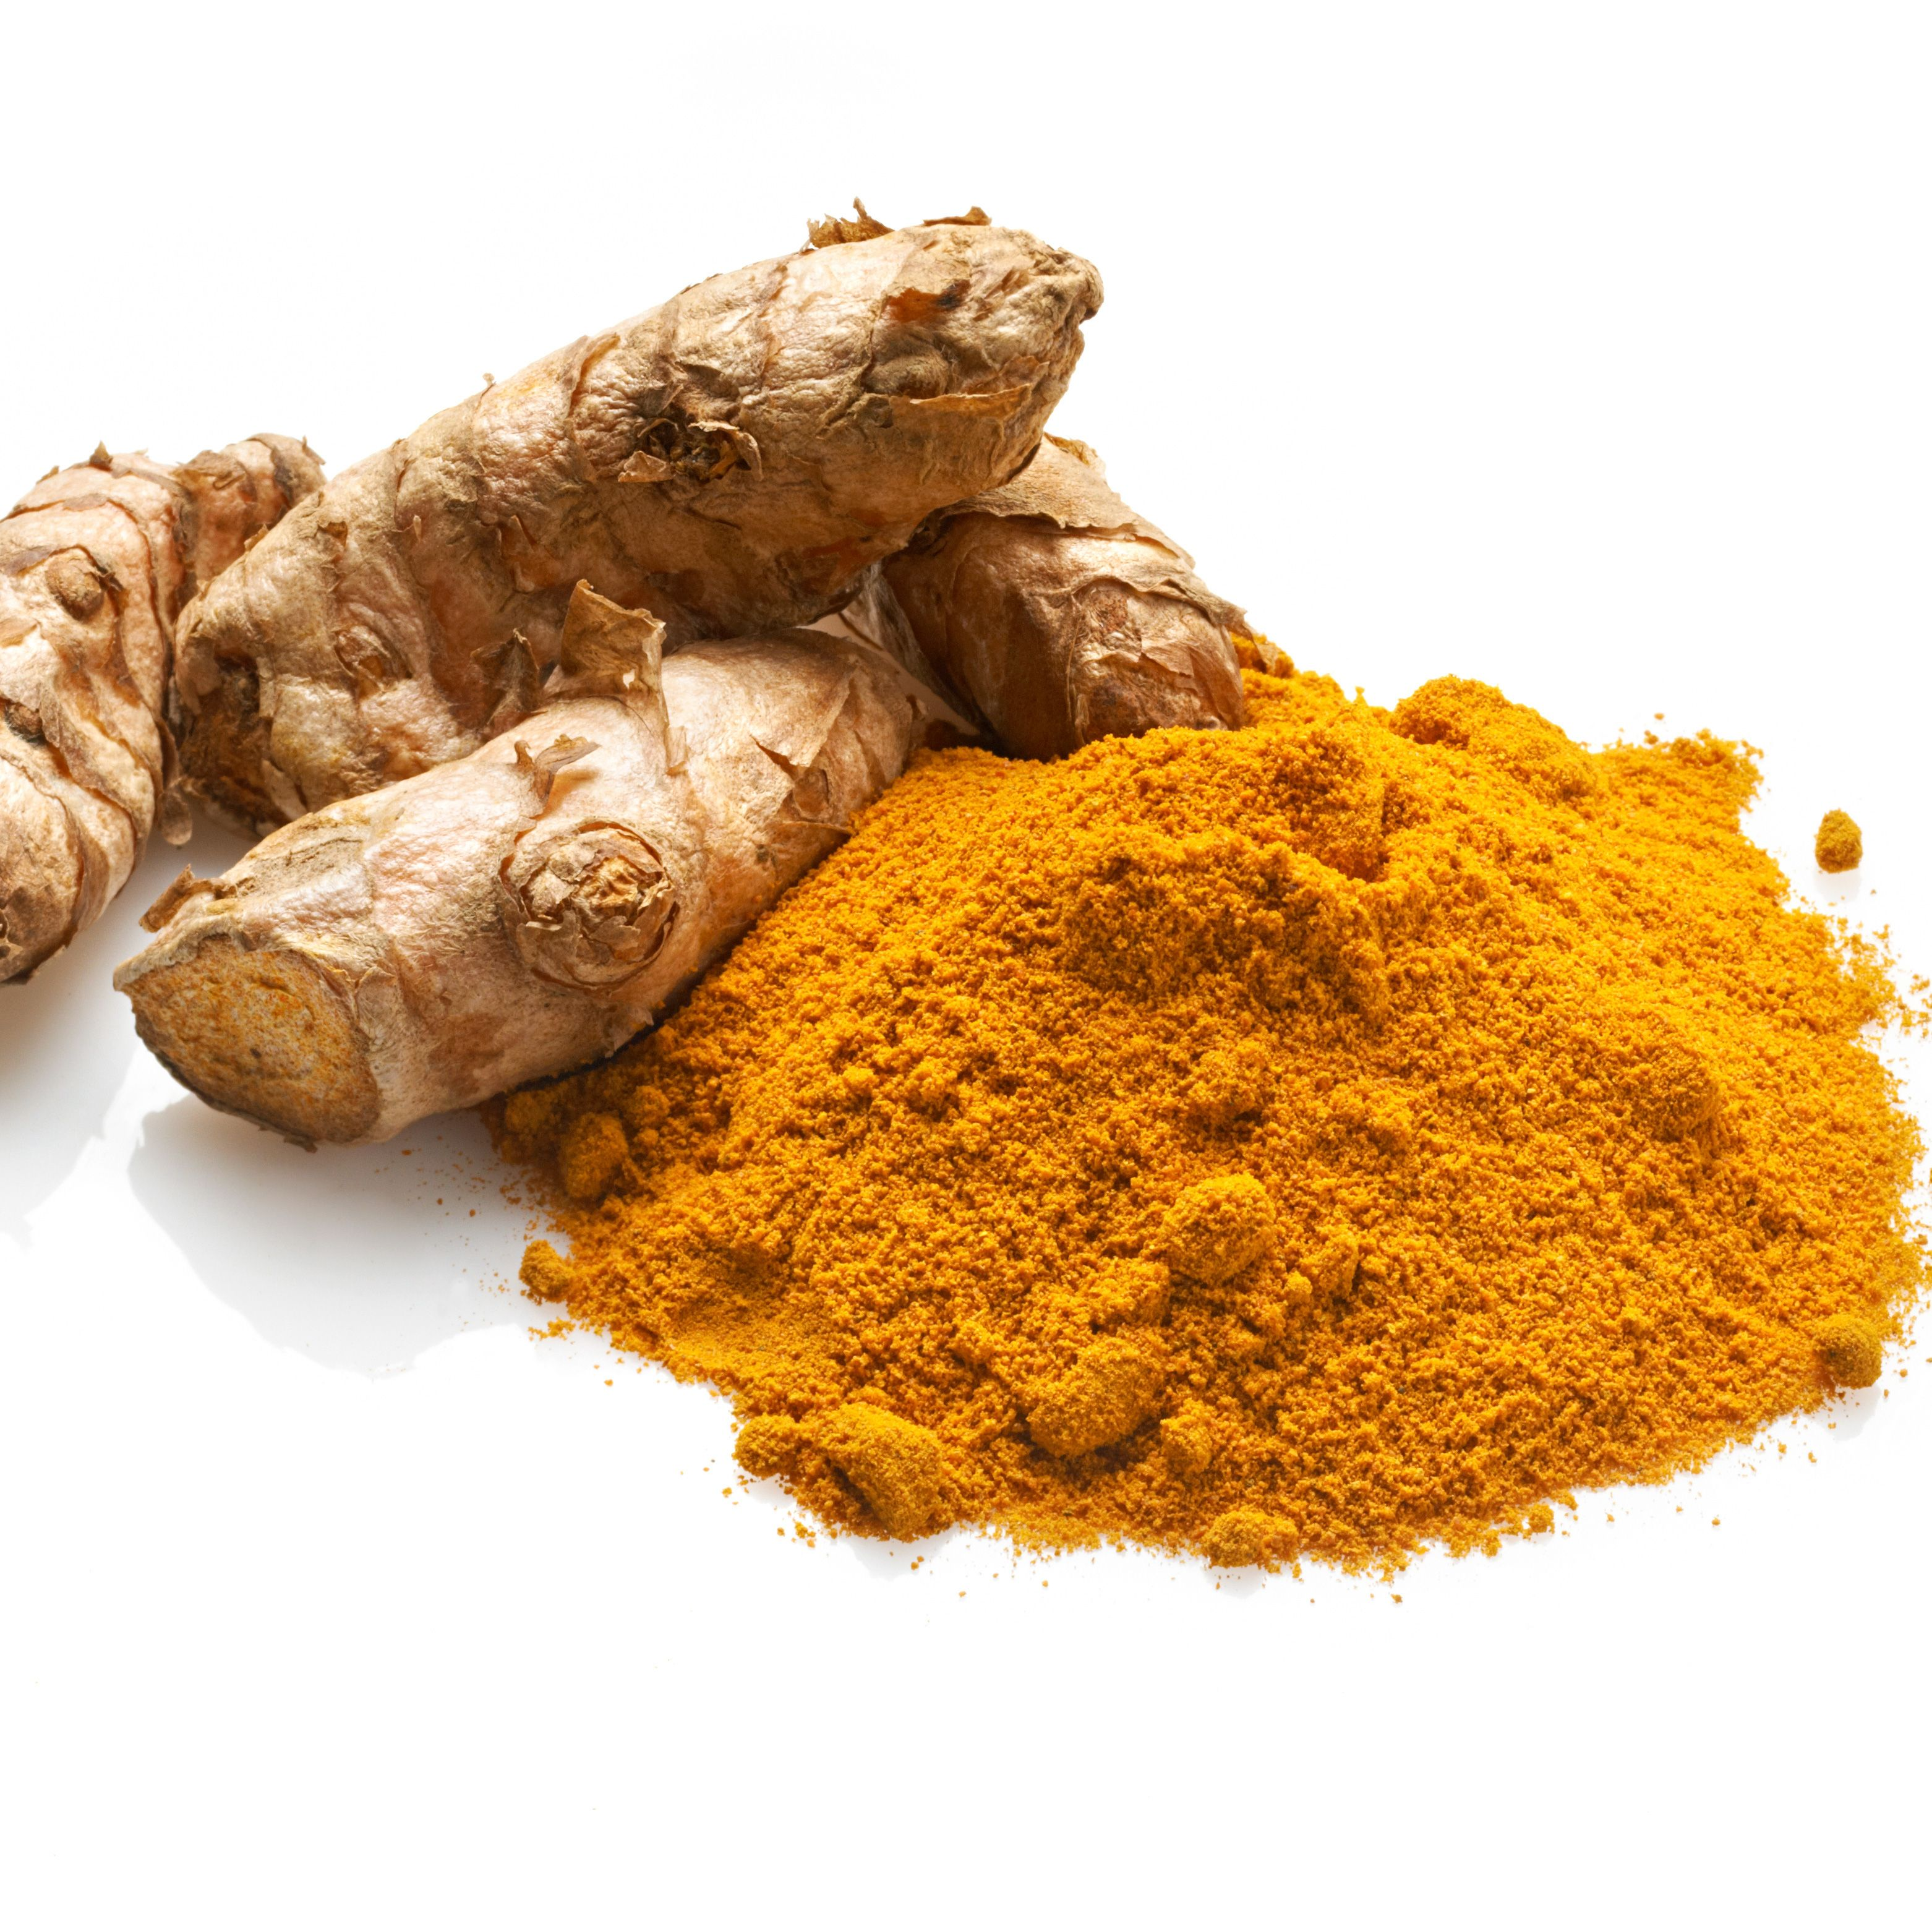 <p><strong>Why should I eat it?</strong> This soothes out inflammation, which can contribute to ageing pores, so eat it to keep swelling down or when skin needs a quick de-puff.</p><p><strong>The science bit:</strong> The key contender is curcumin, its main ingredient, which gives the spice its orange-gold colour and calms skin-swelling down. Great for repairing cell destruction and even healing scars, it also interacts with collagen to increase its viscosity.</p><p><strong>Serve it up:</strong> We all have this spice sitting in the cupboard, so perk your dishes up&#x3B; sprinkle it into a chicken soup or stir-fry with vegetables. You can even make an easy salad dressing with a host of other treats&#x3B; we love it with oil and lemon juice to amp up a healthy lunch.</p>